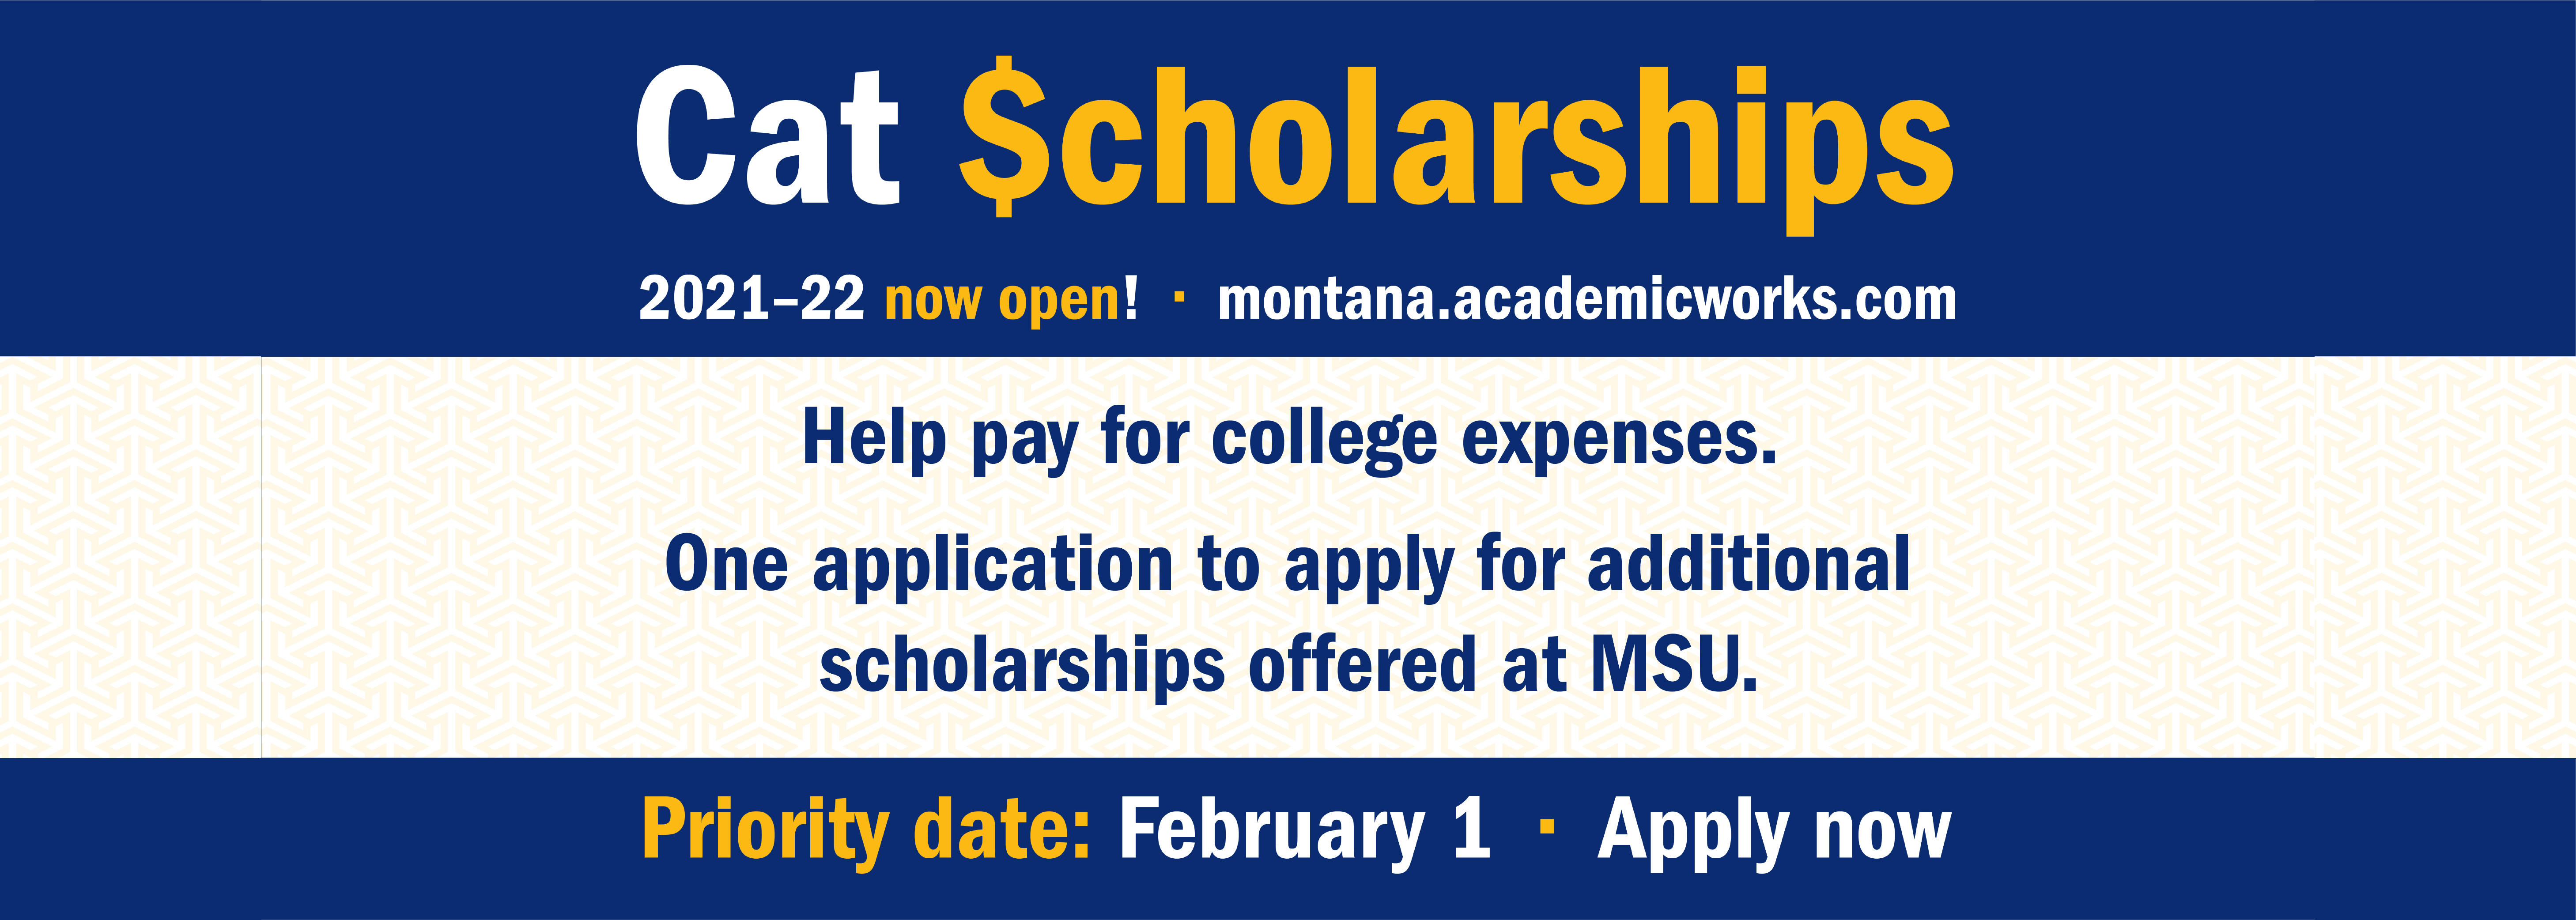 Cat $cholarships 2021-22 now open! montana.academicworks.com. Help pay for college expenses. One application to apply for additional scholarships offered at MSU. Priority date: February 1. Apply Now